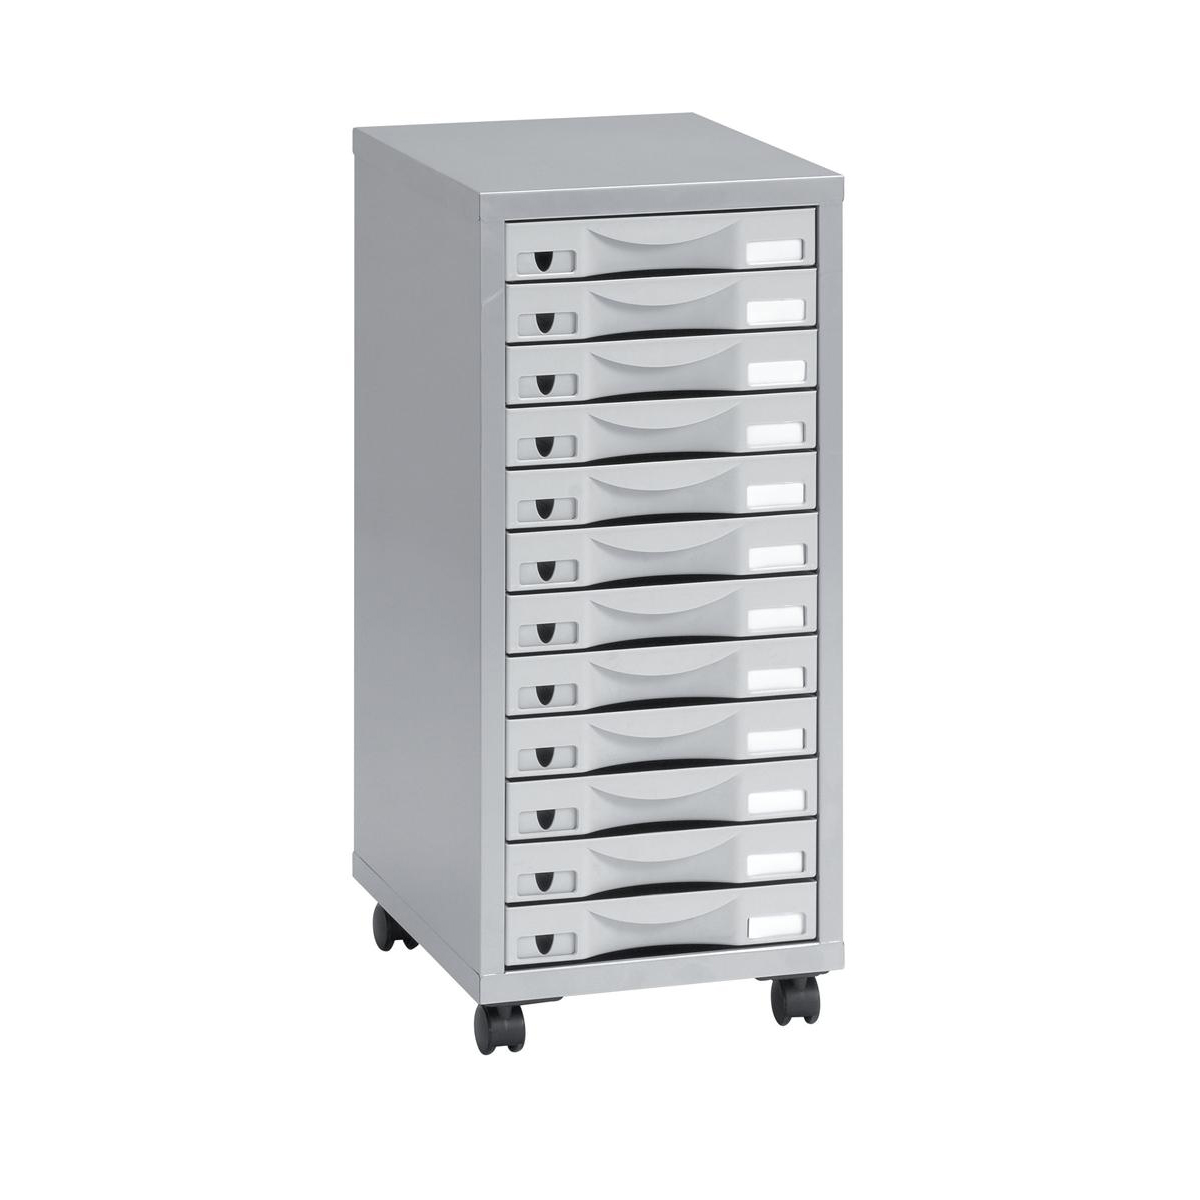 Filing cabinets or accesories Pierre Henry 12 Drawer Multidrawer 300x390x710mm Silver Grey Ref 95072